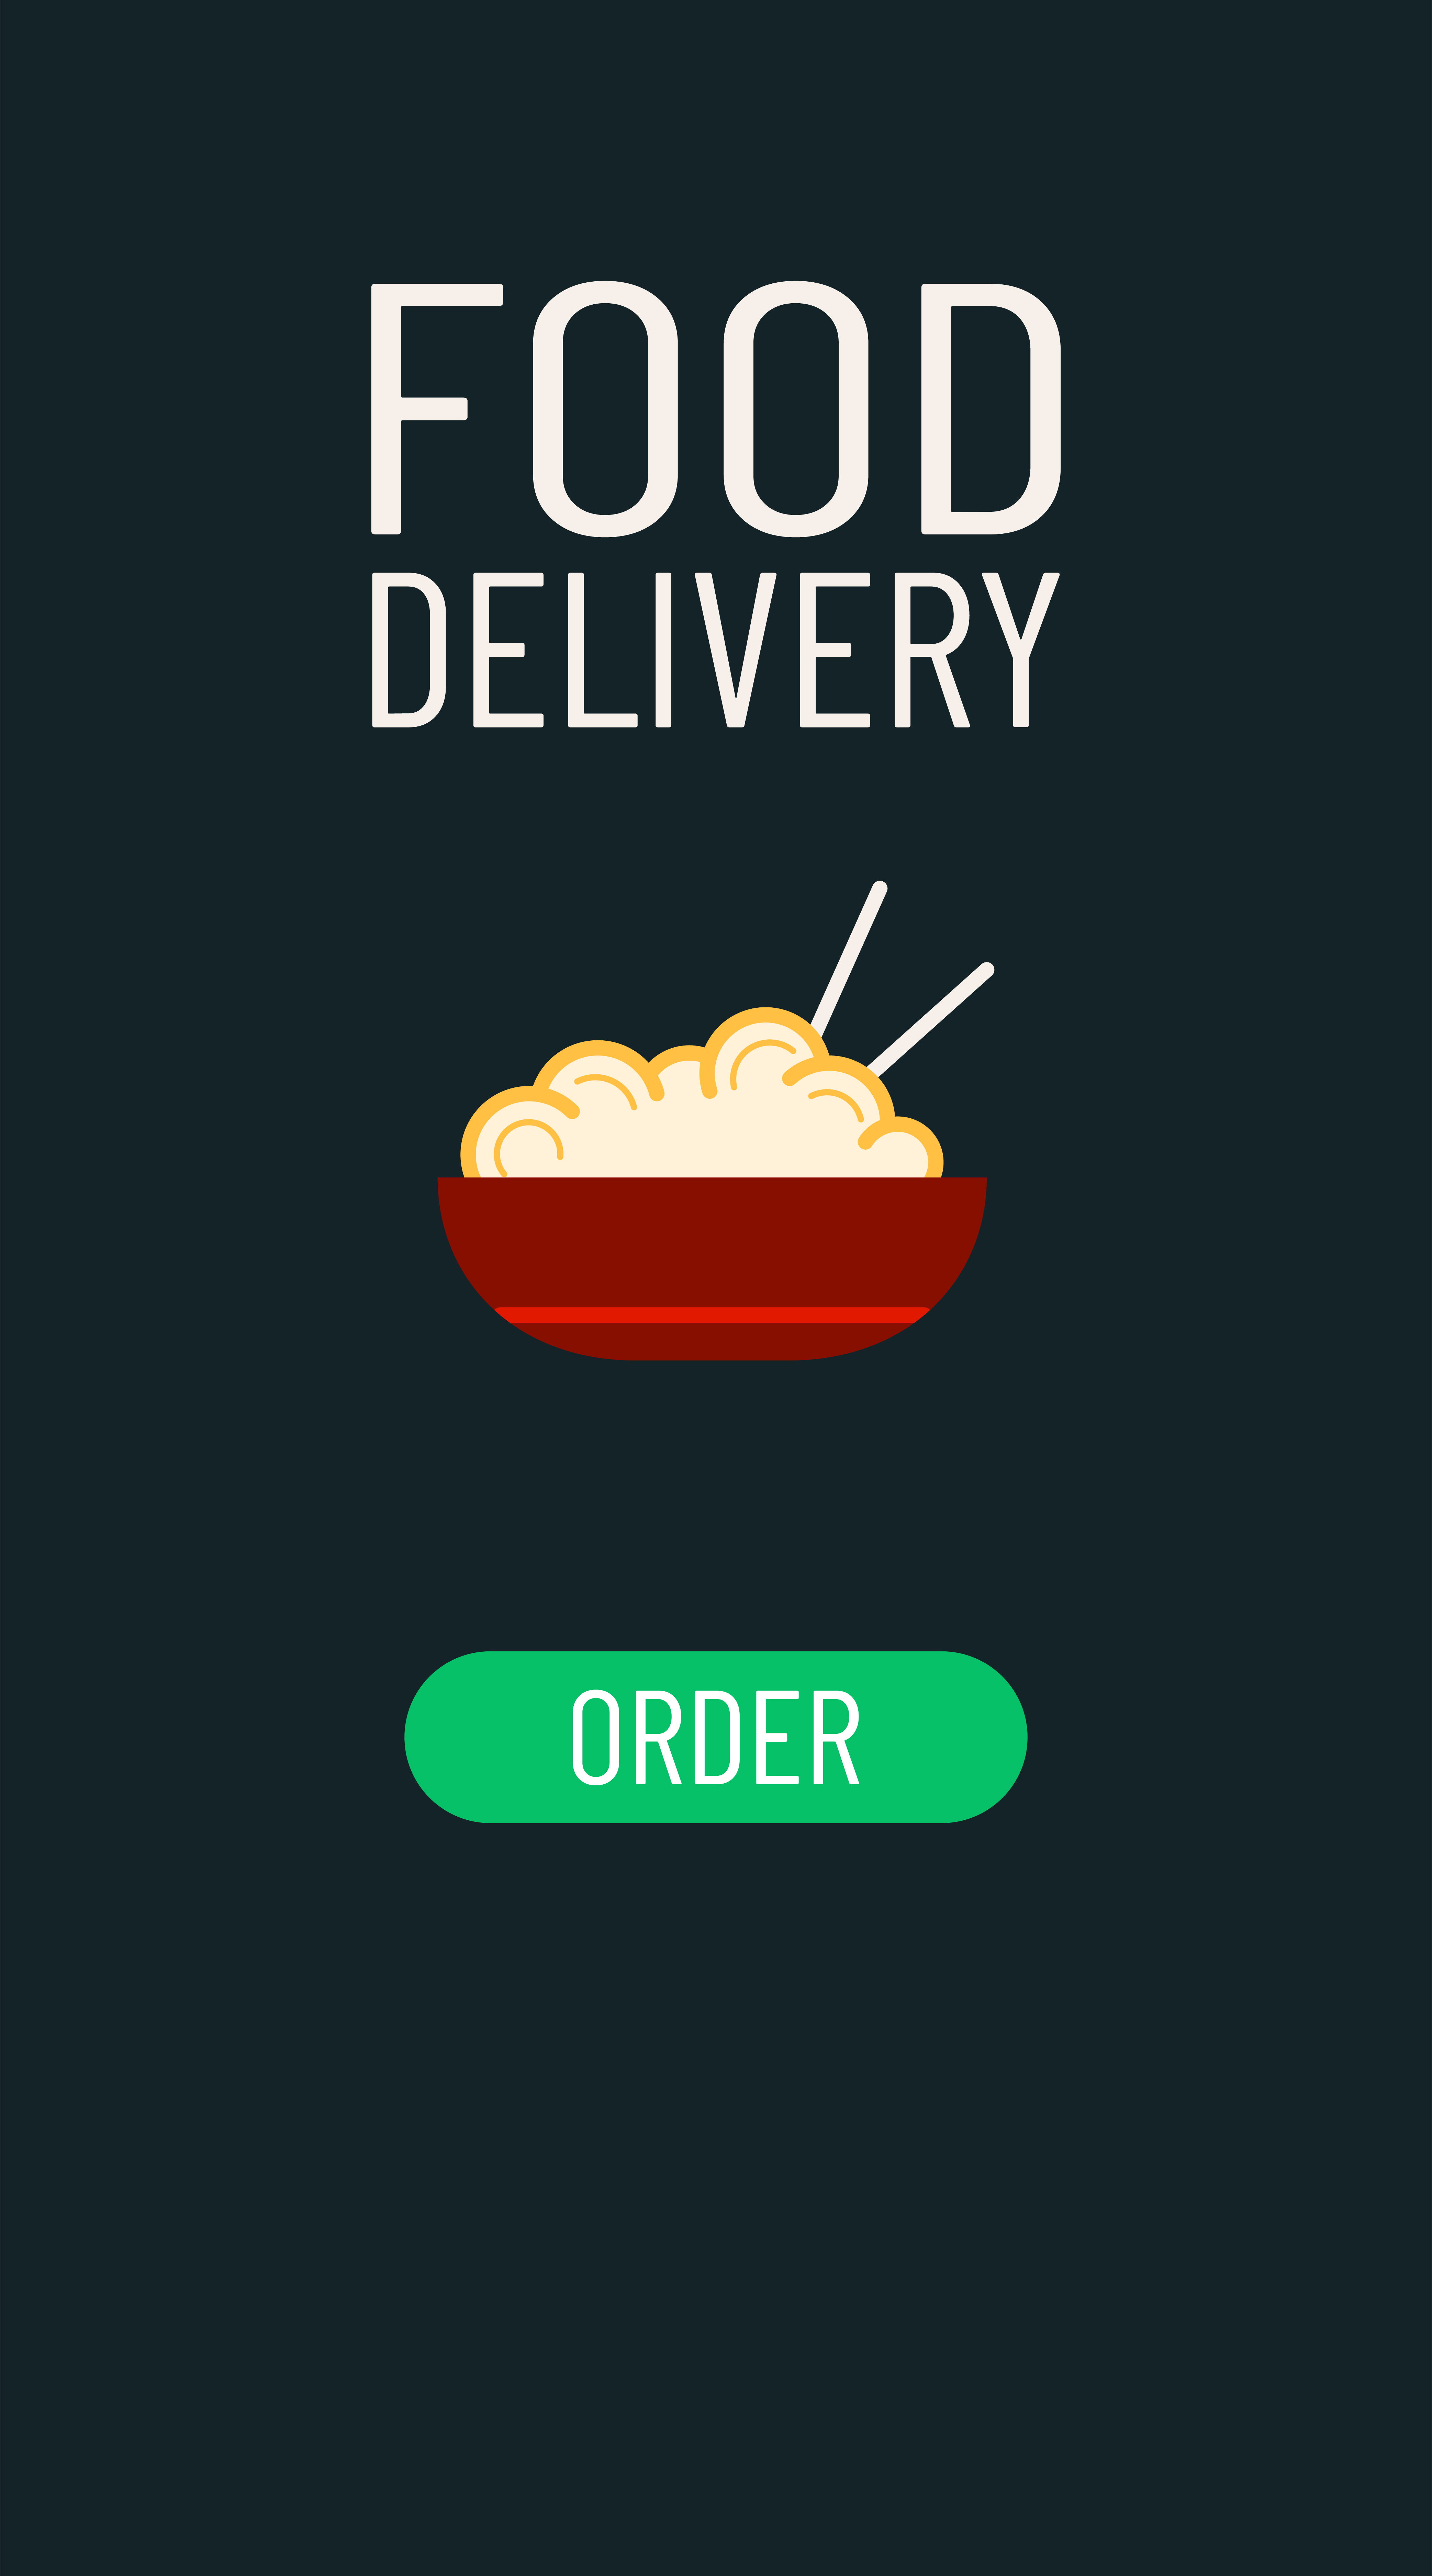 Food delivery order. Smartphone screen with online fast delivery food ordering. White lettering, drawn noodles icon and green button. Vector illustration.